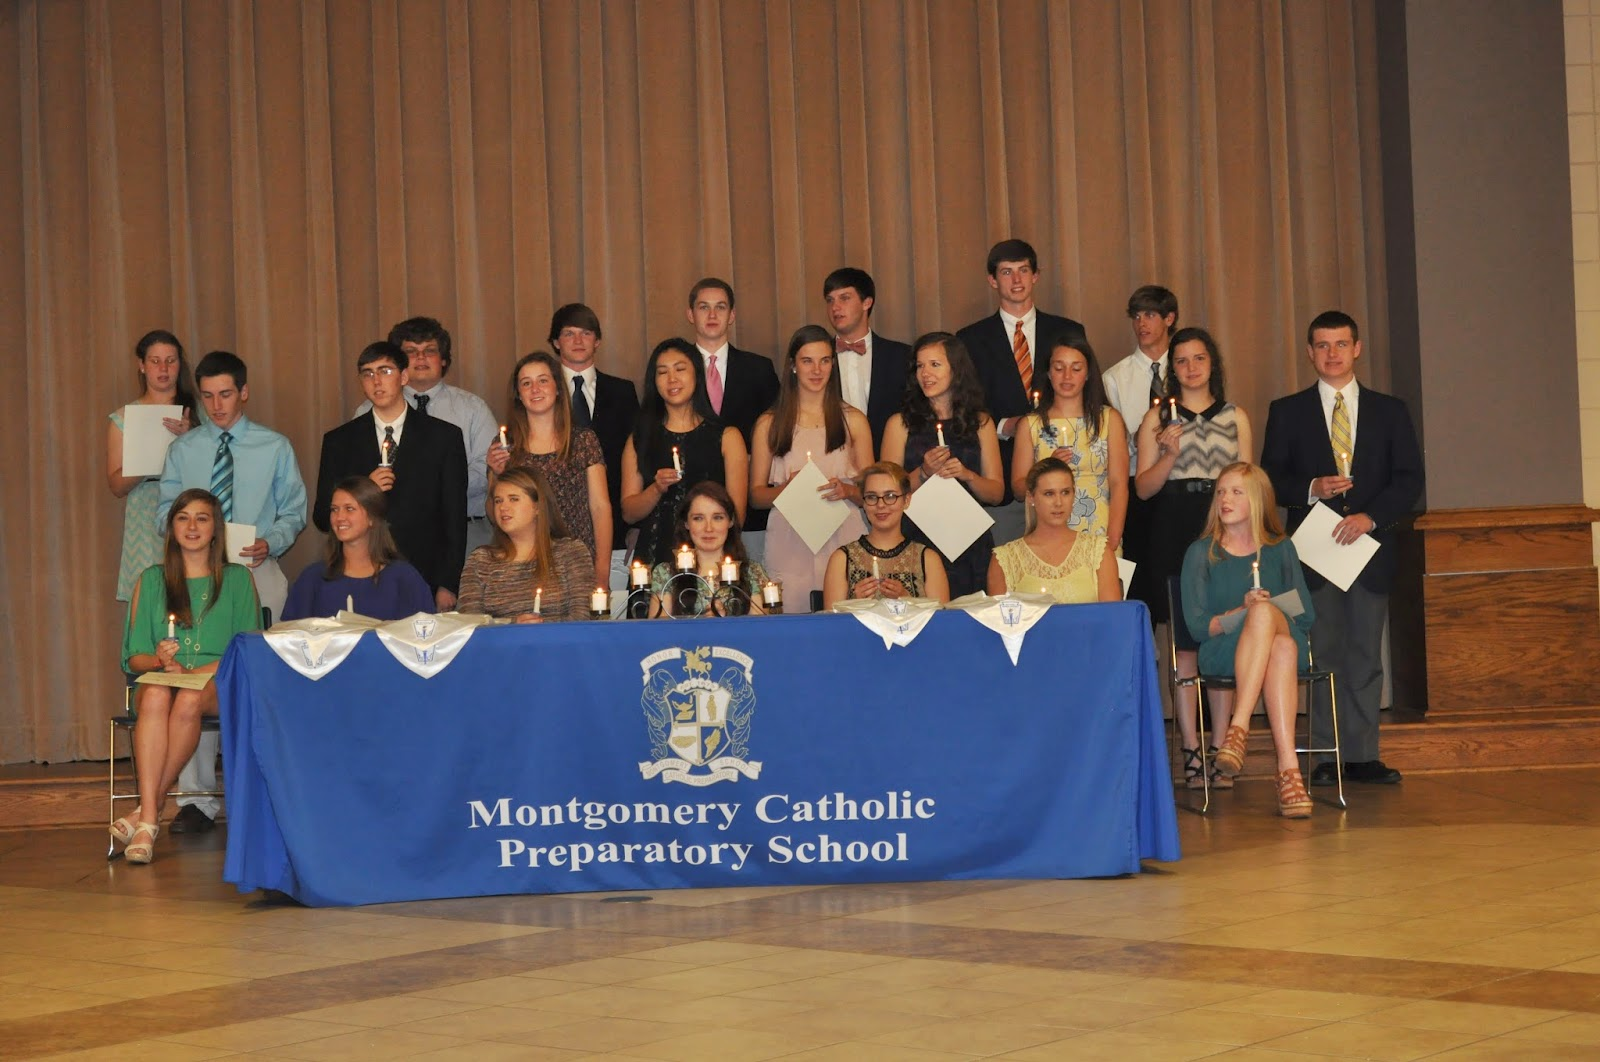 NHS at Montgomery Catholic Preparatory School inducts 22 new members. 1